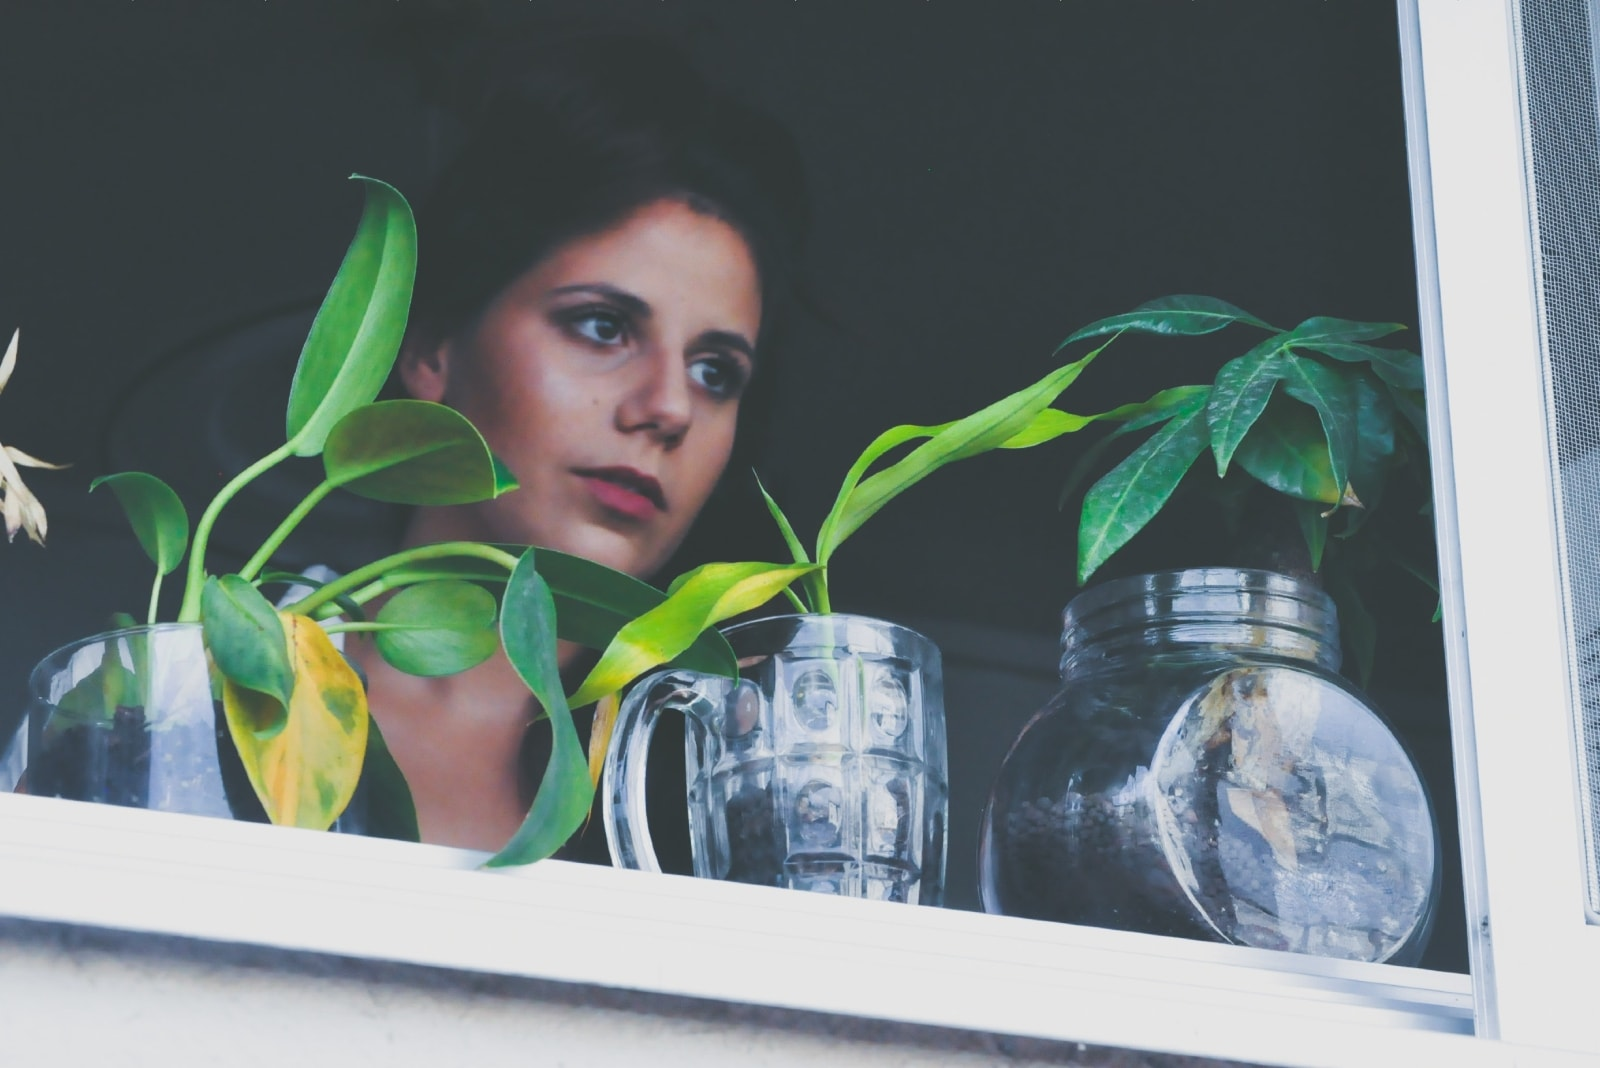 woman standing near window pane with glass vases